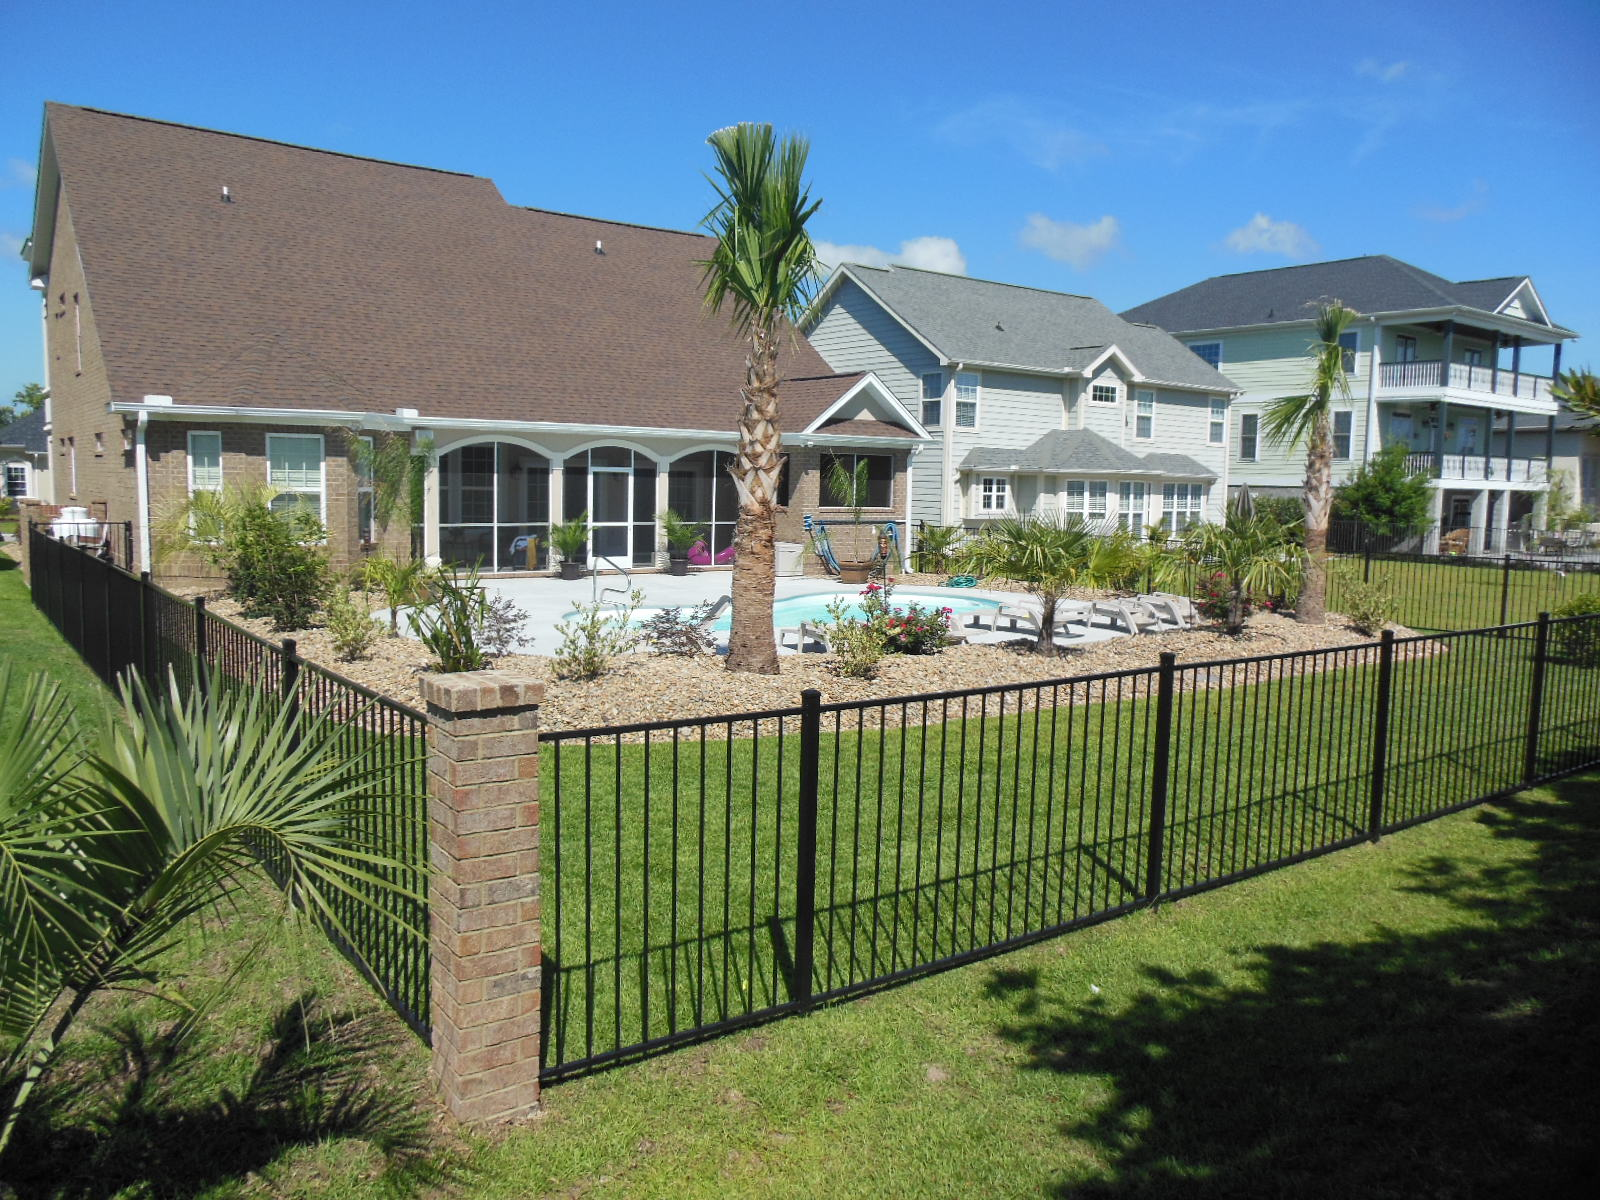 Aluminum fence with pool